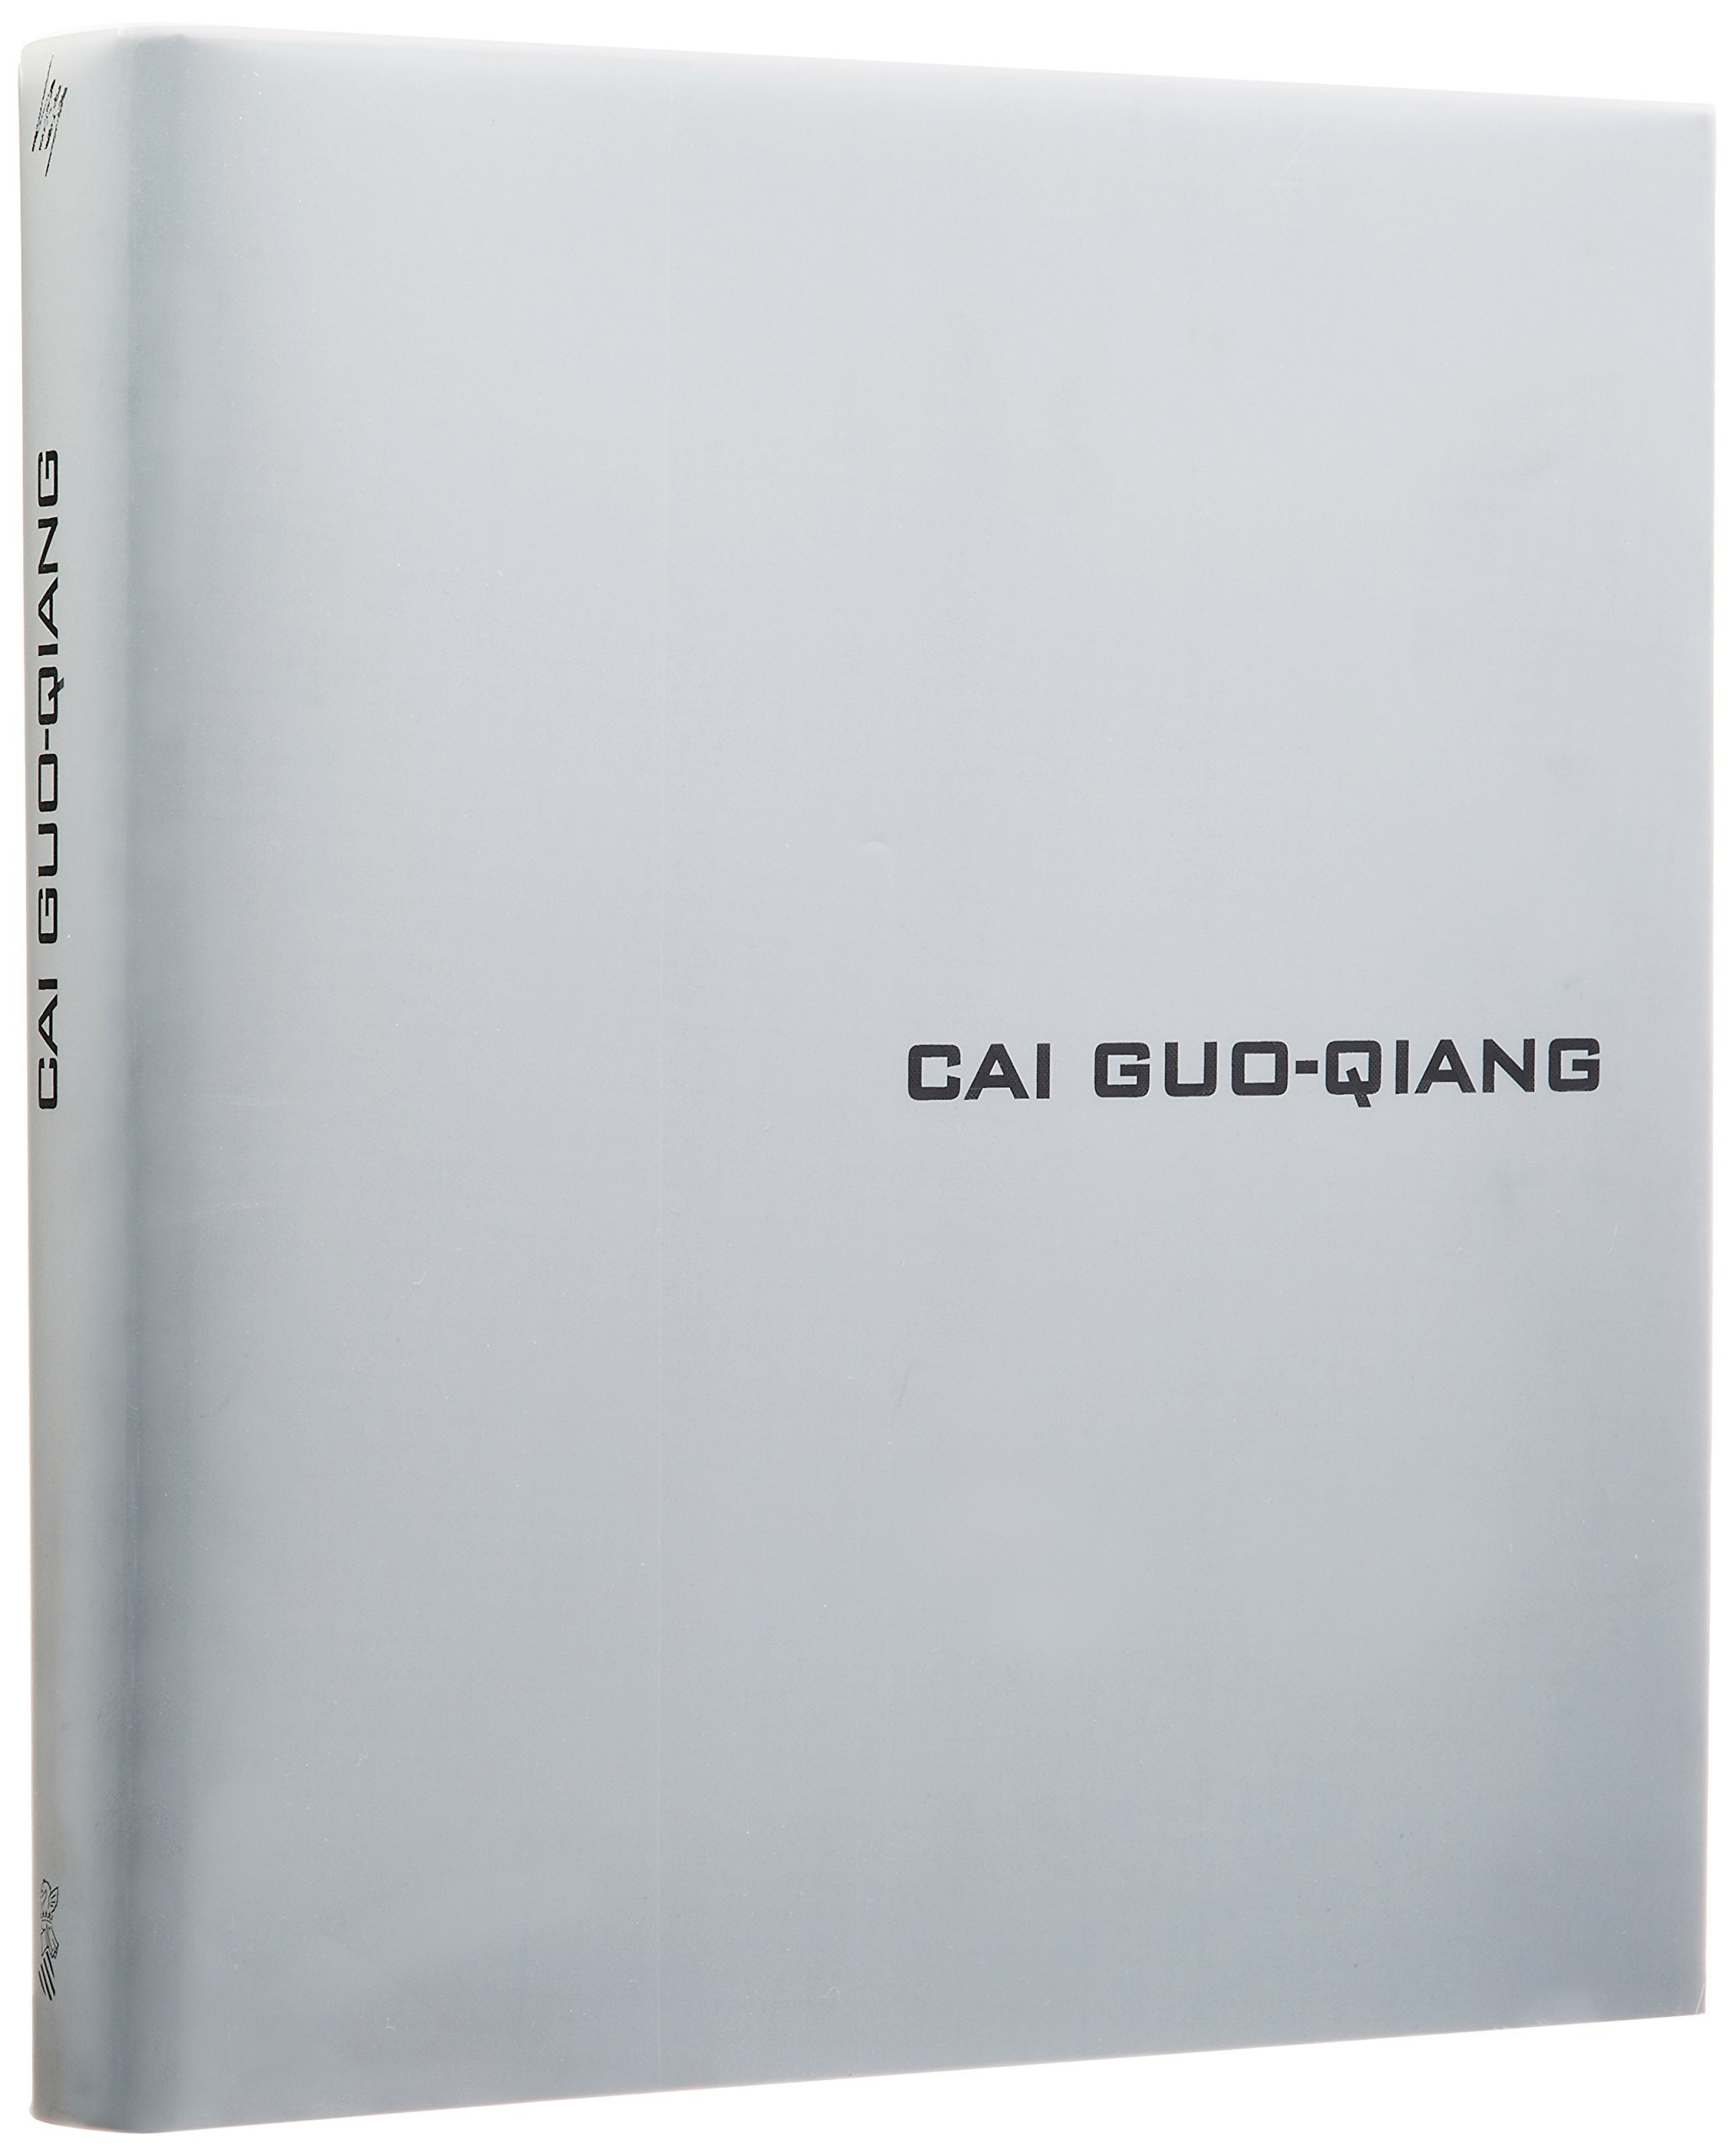 Cai Guo-Qiang: On Black Fireworks (English, Catalan and Spanish Edition) pdf